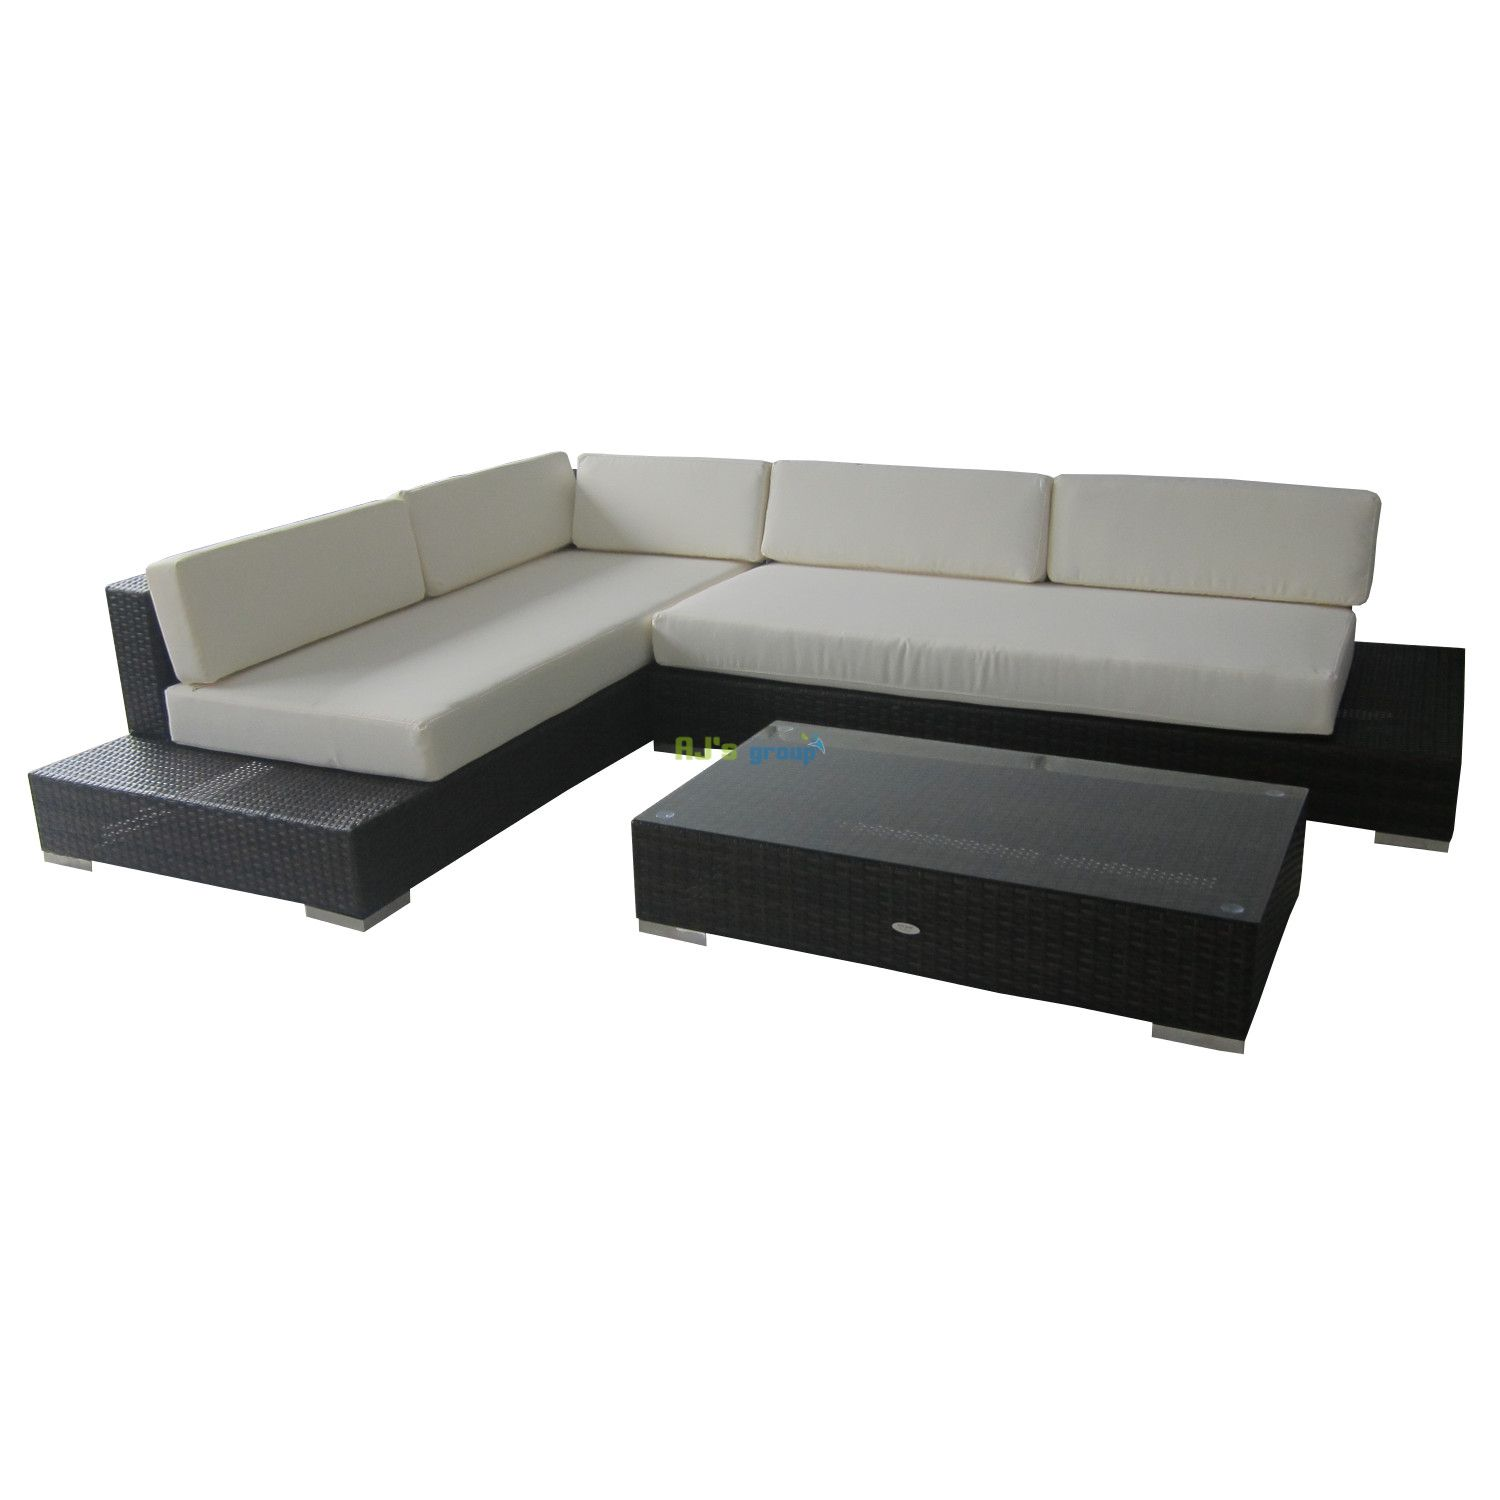 gartenmobel lounge polyrattan. Black Bedroom Furniture Sets. Home Design Ideas